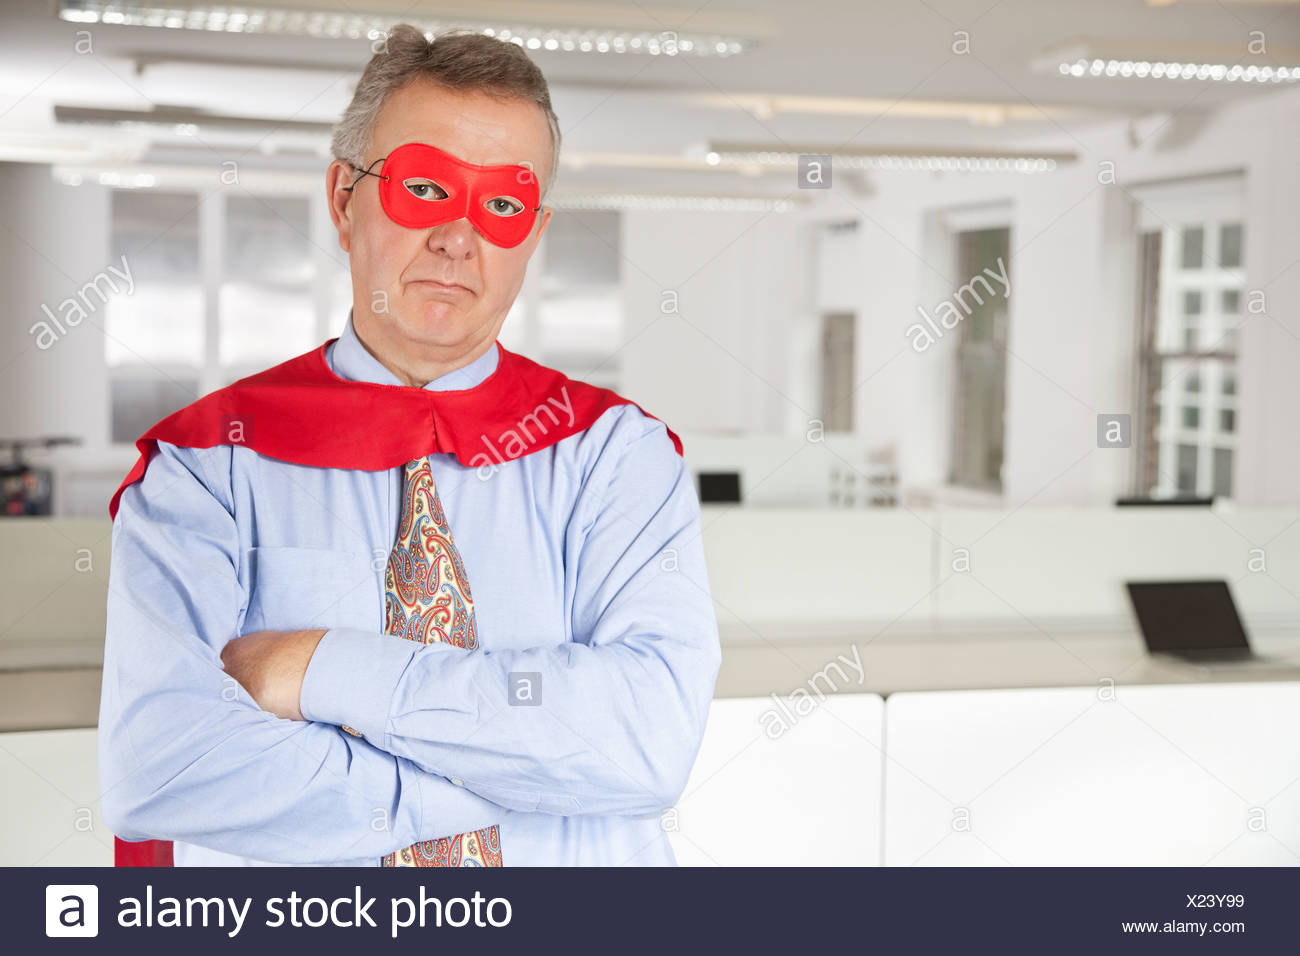 Portrait of serious businessman in superhero costume in office - Stock Image